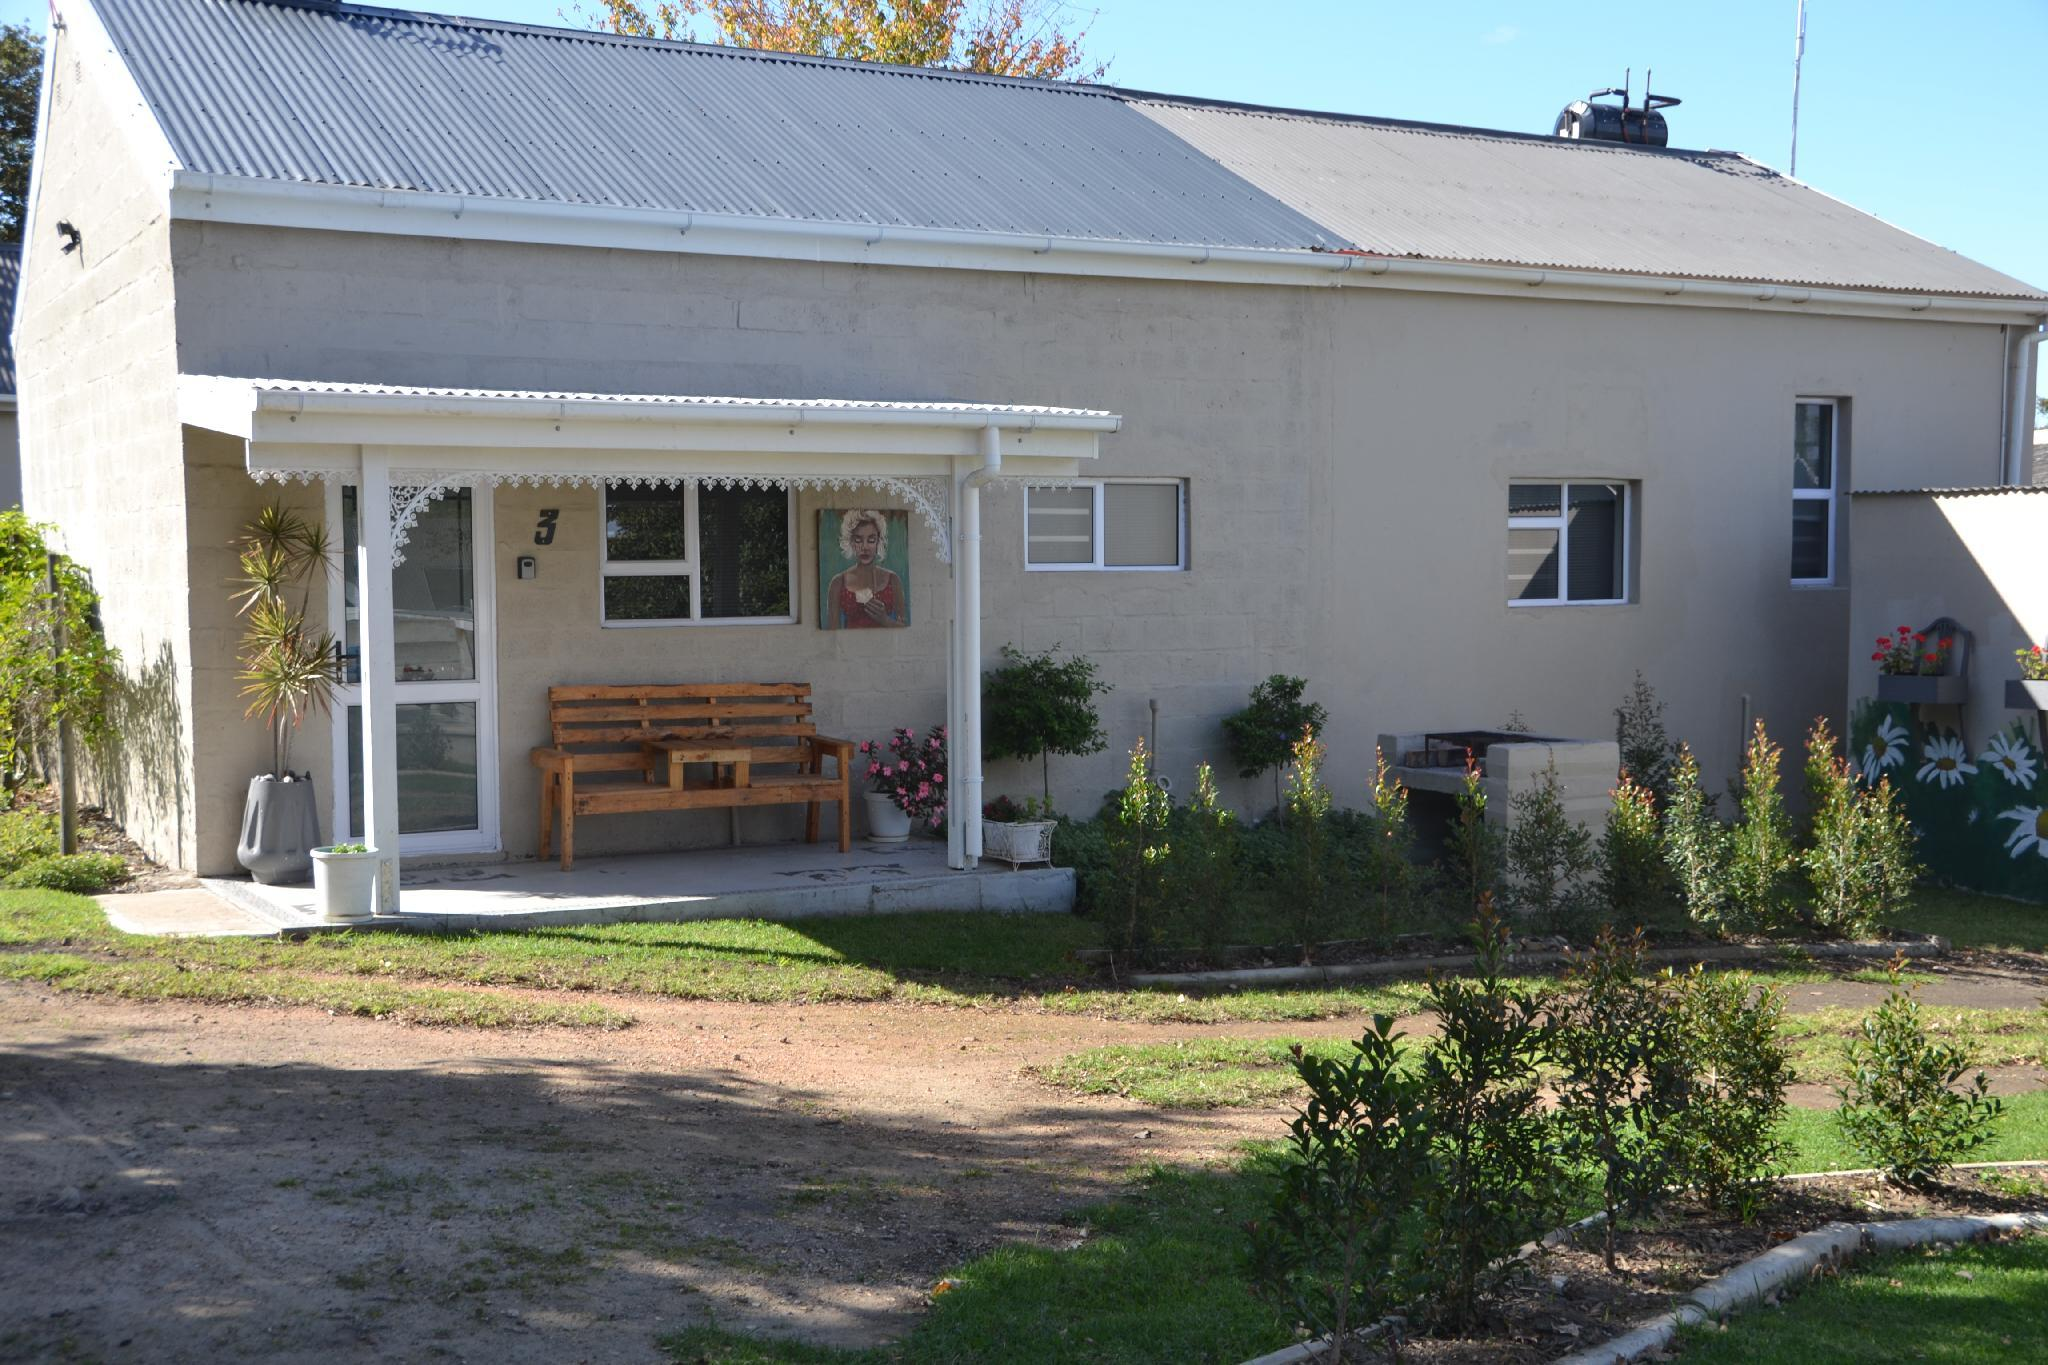 On Main Luxury Self Catering